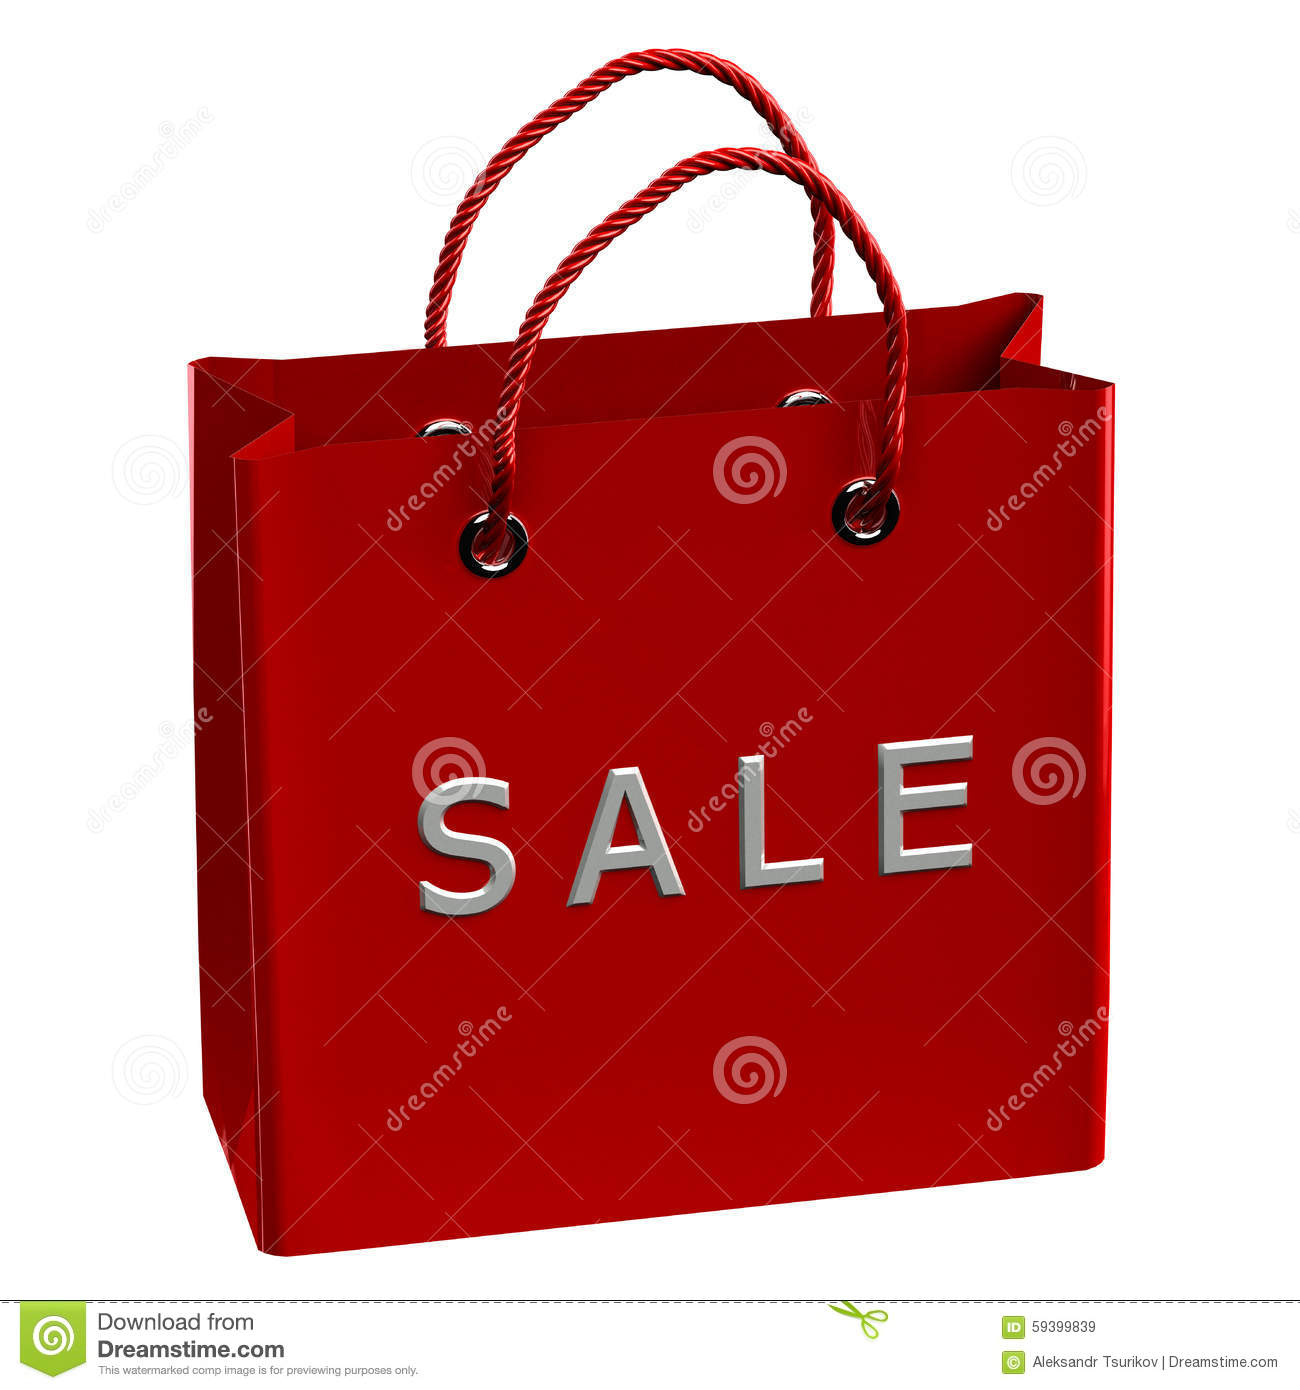 7759f0490c7 Red shopping bag with word sale, isolated on white background. 3D render.  More similar stock illustrations